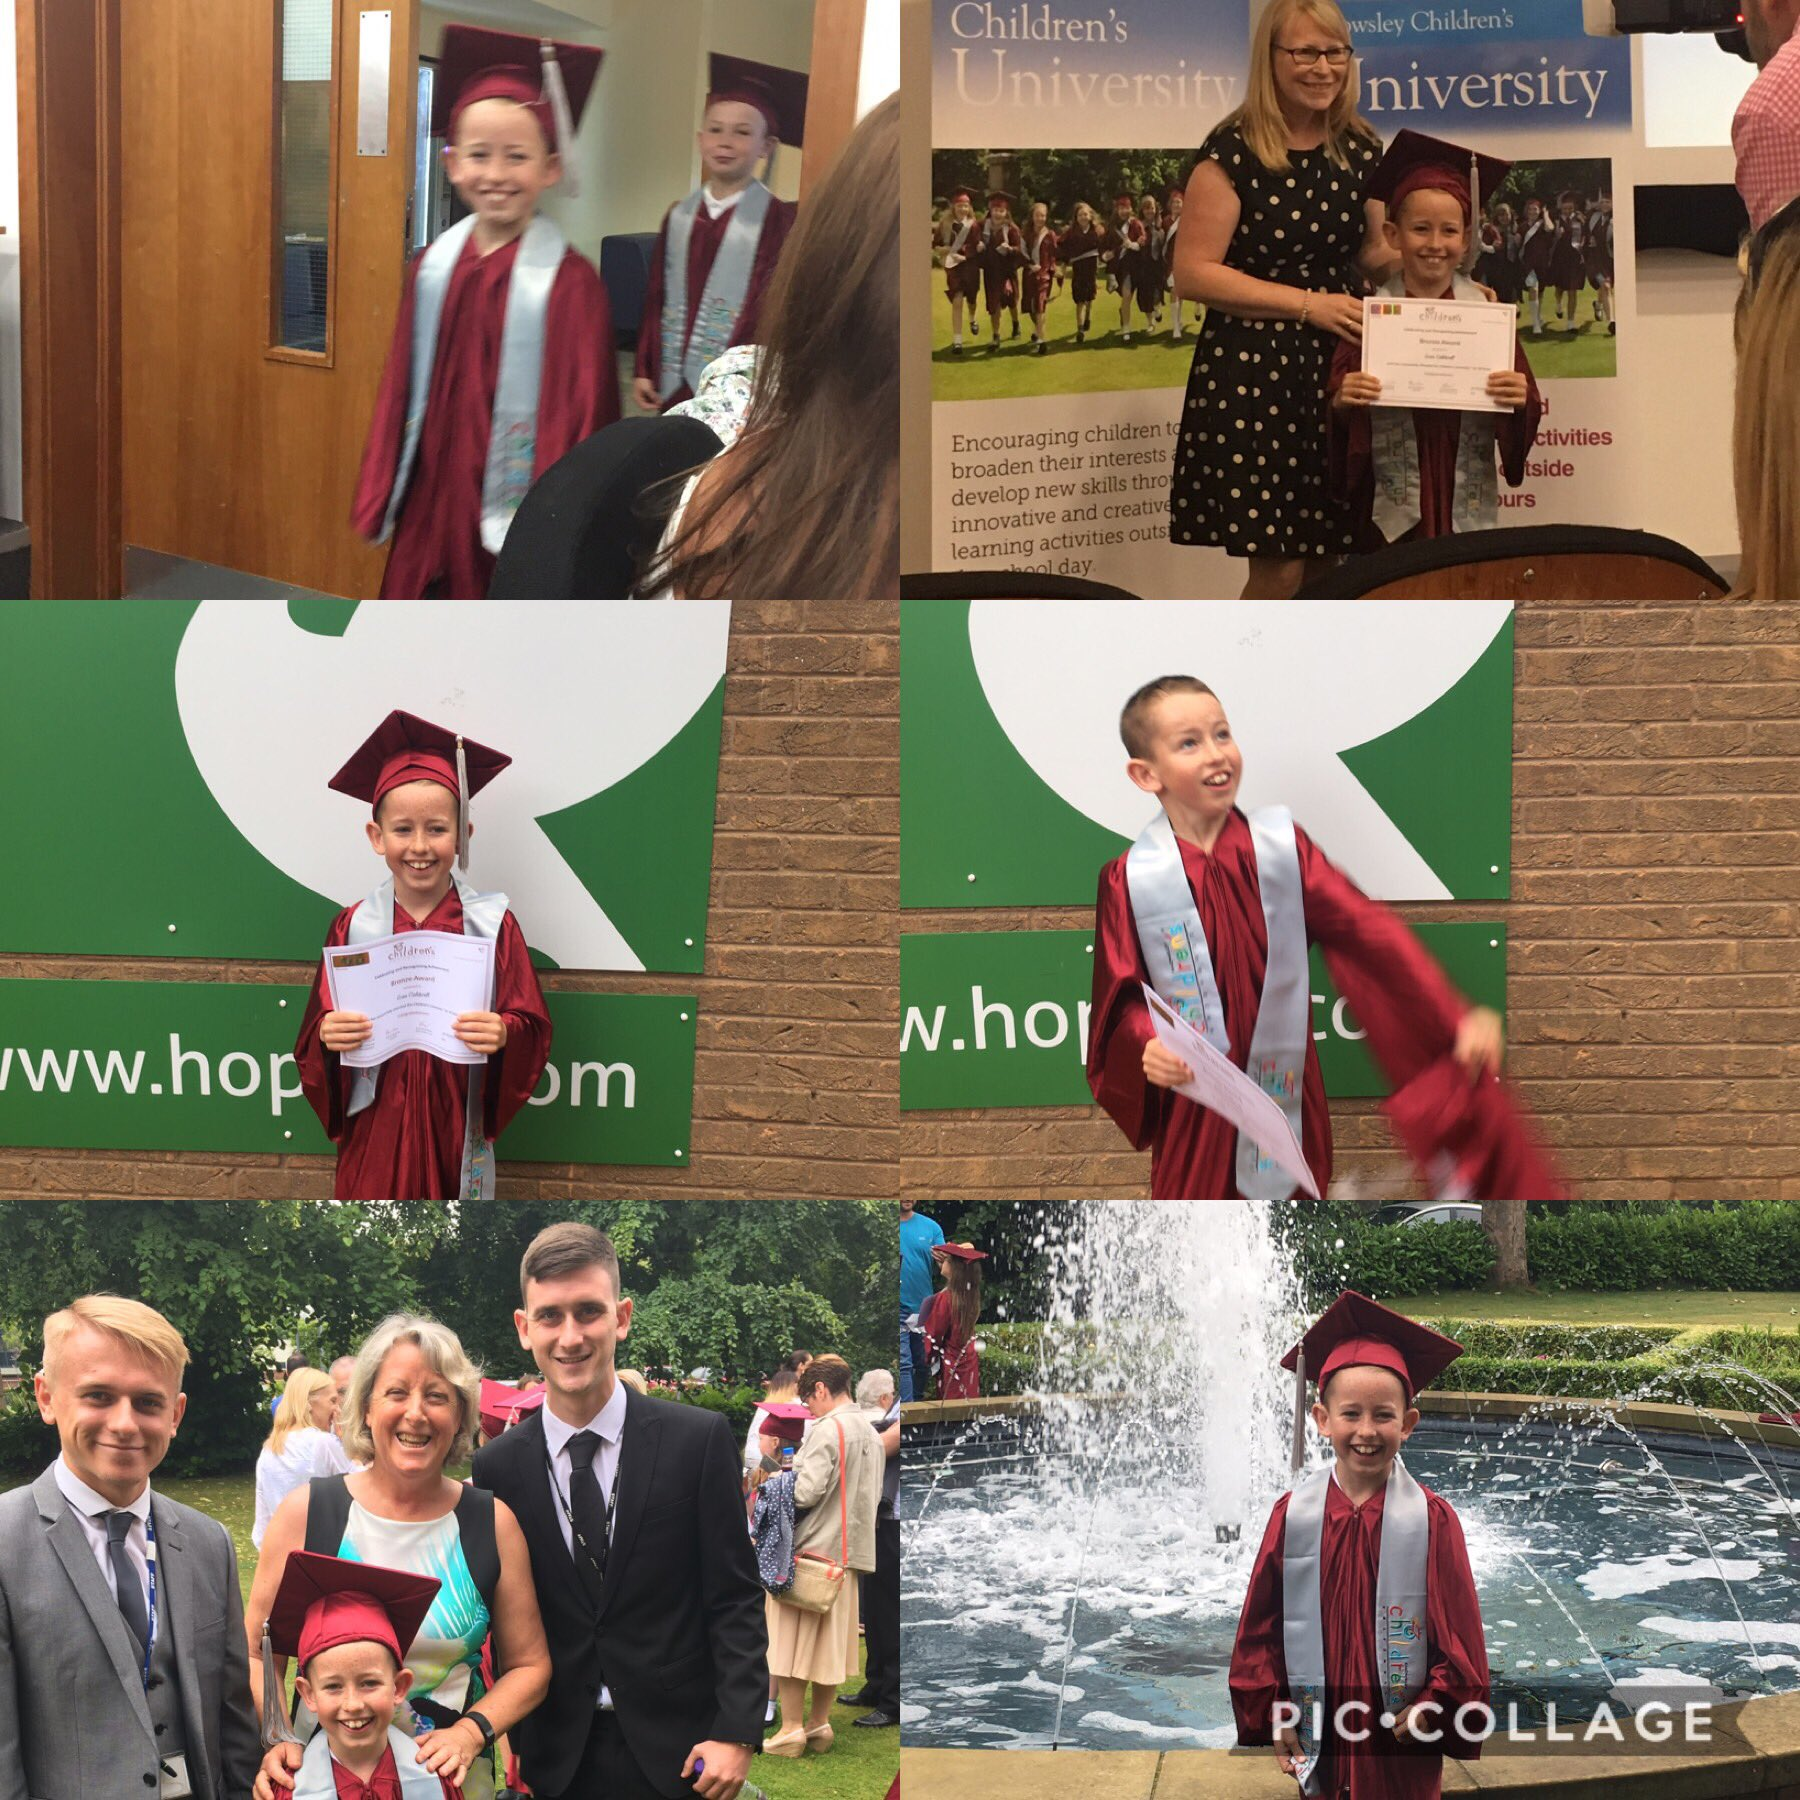 Well done to all the children @PrescotPrimary who graduated🎓at children's  university today👏🏼! Amazing teachers @PrescotCPSport thank you👏🏼 https://t.co/hYyOnPDYGr